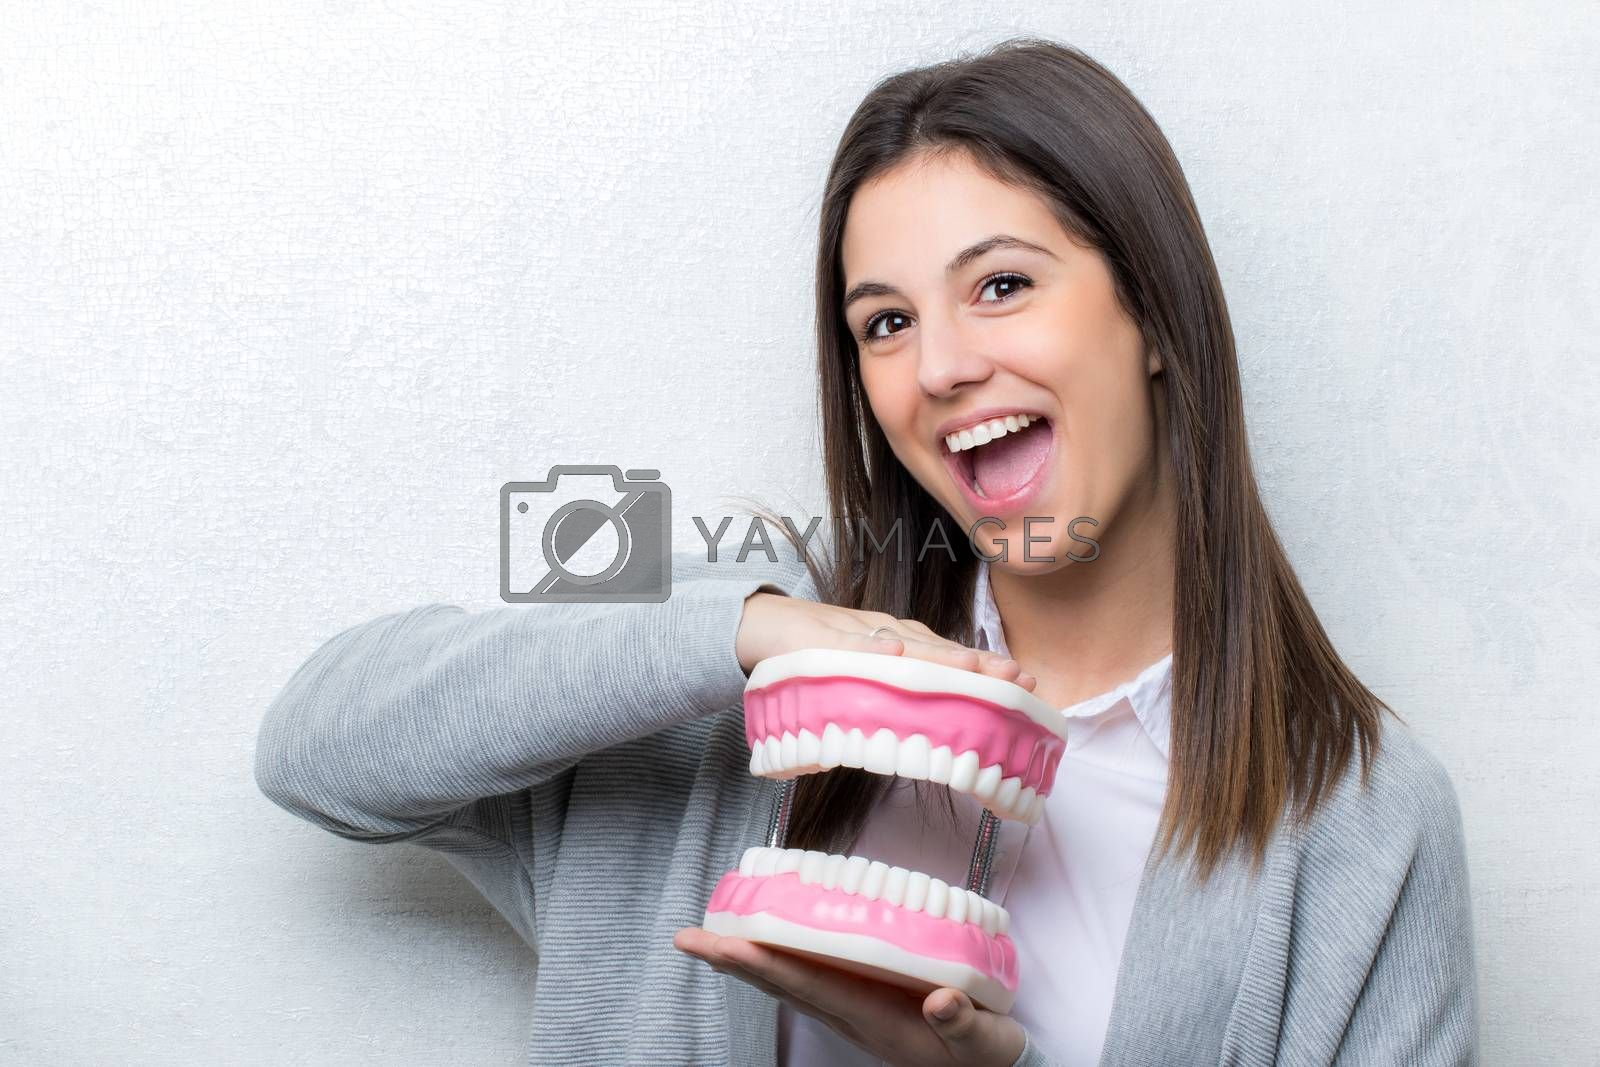 Close up portrait of attractive young girl holding oversize human teeth prosthesis.Woman  with open mouth facial expression against seamless light background.